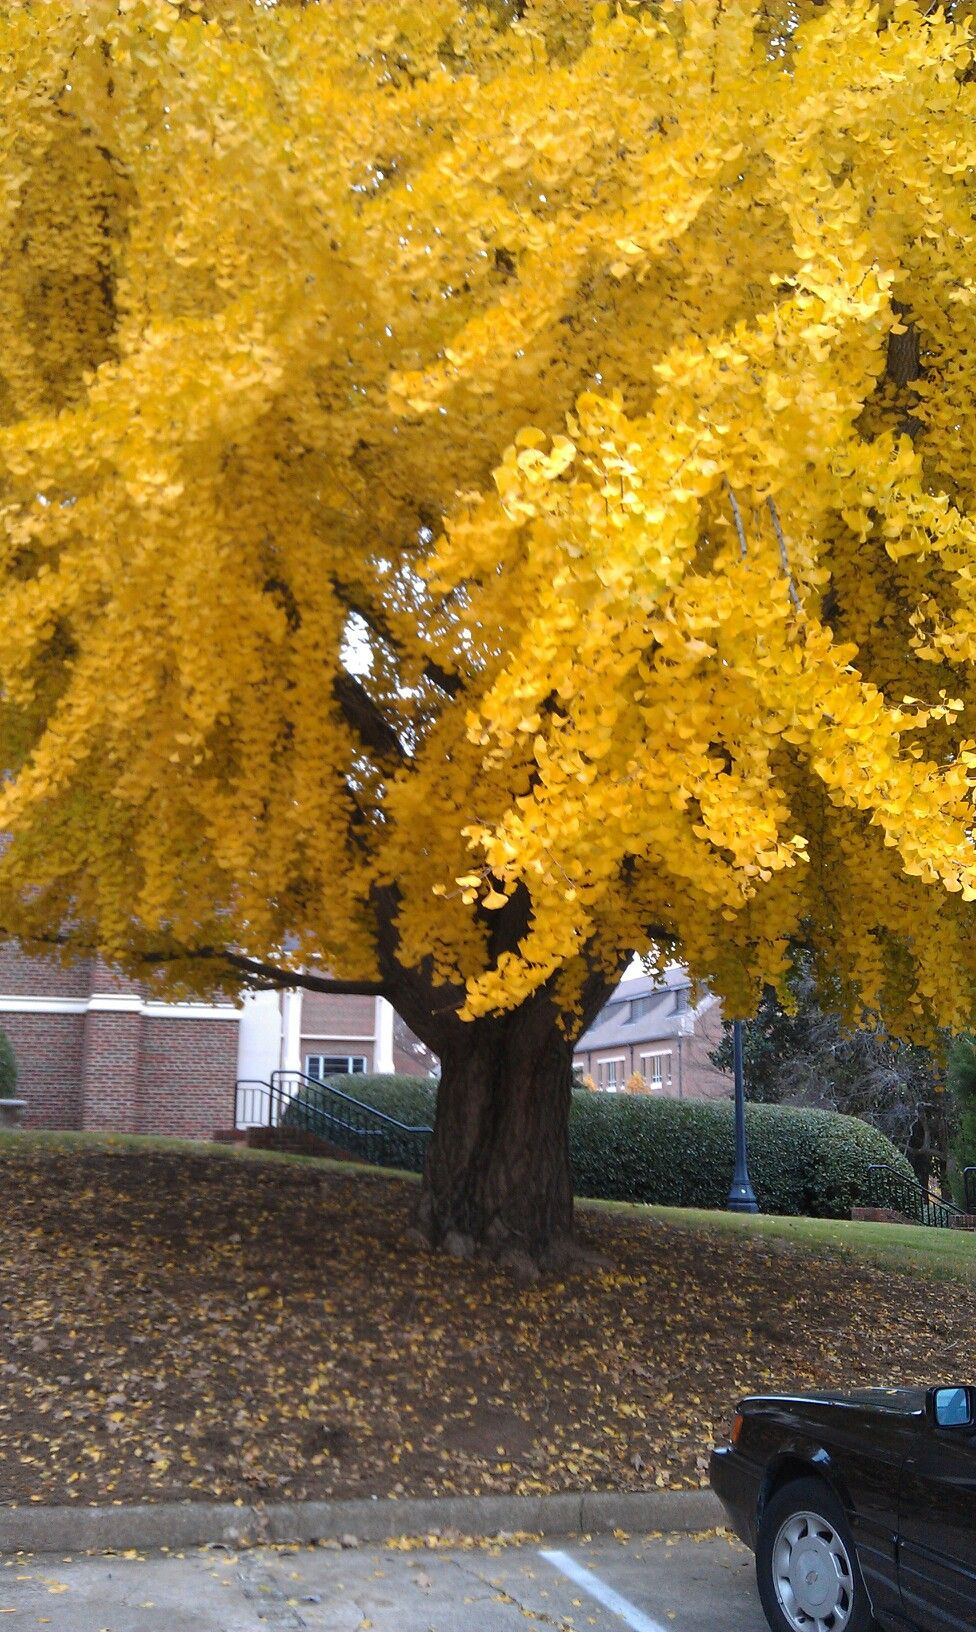 21+ What trees turn yellow in the fall ideas in 2021